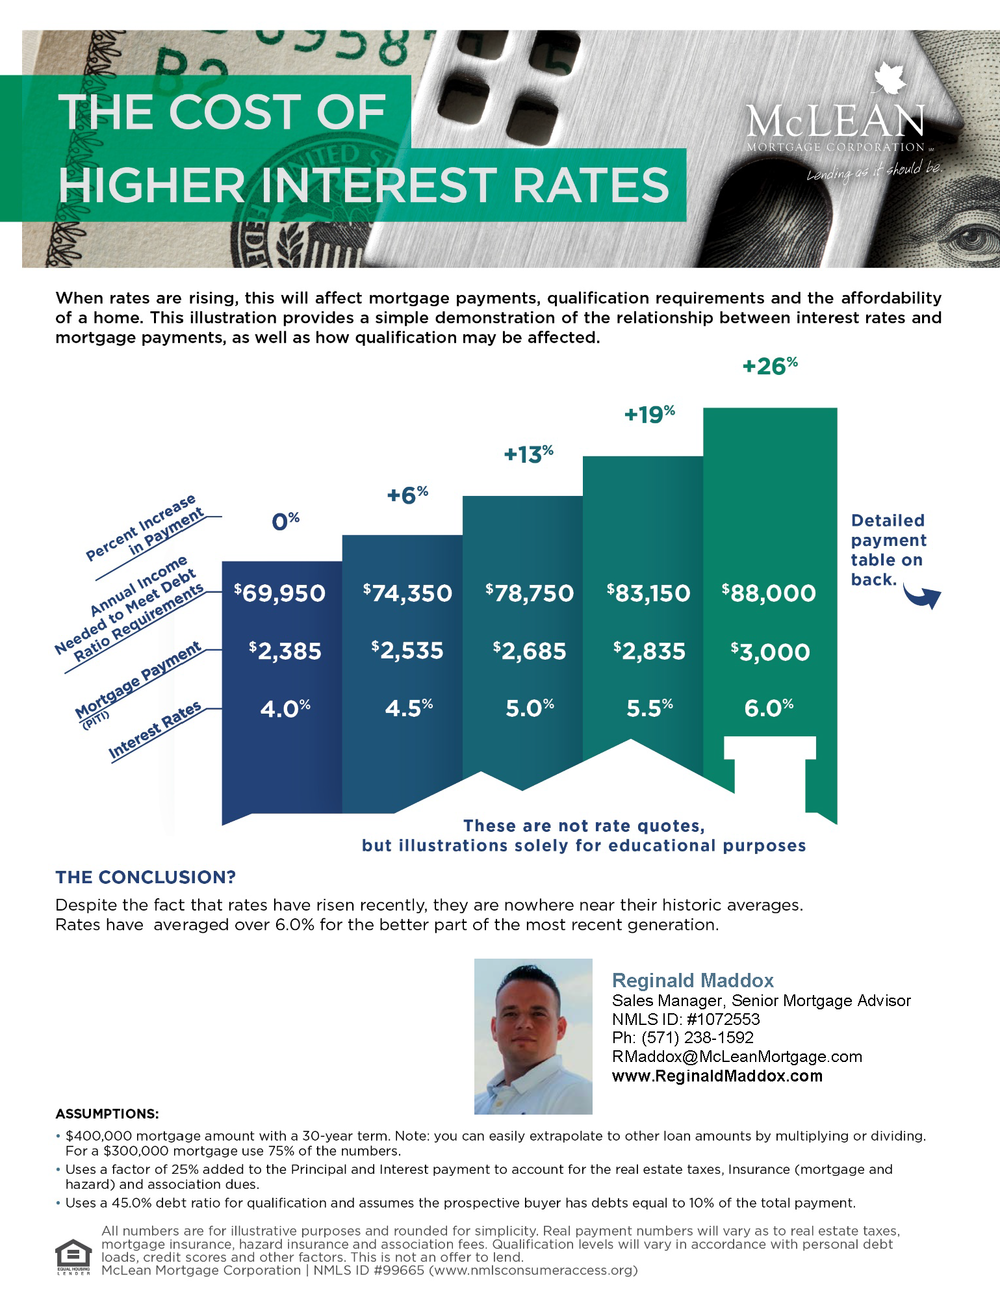 Cost of Higher Interest Rates Two Sided - Reggie - 3.30.18 1.png